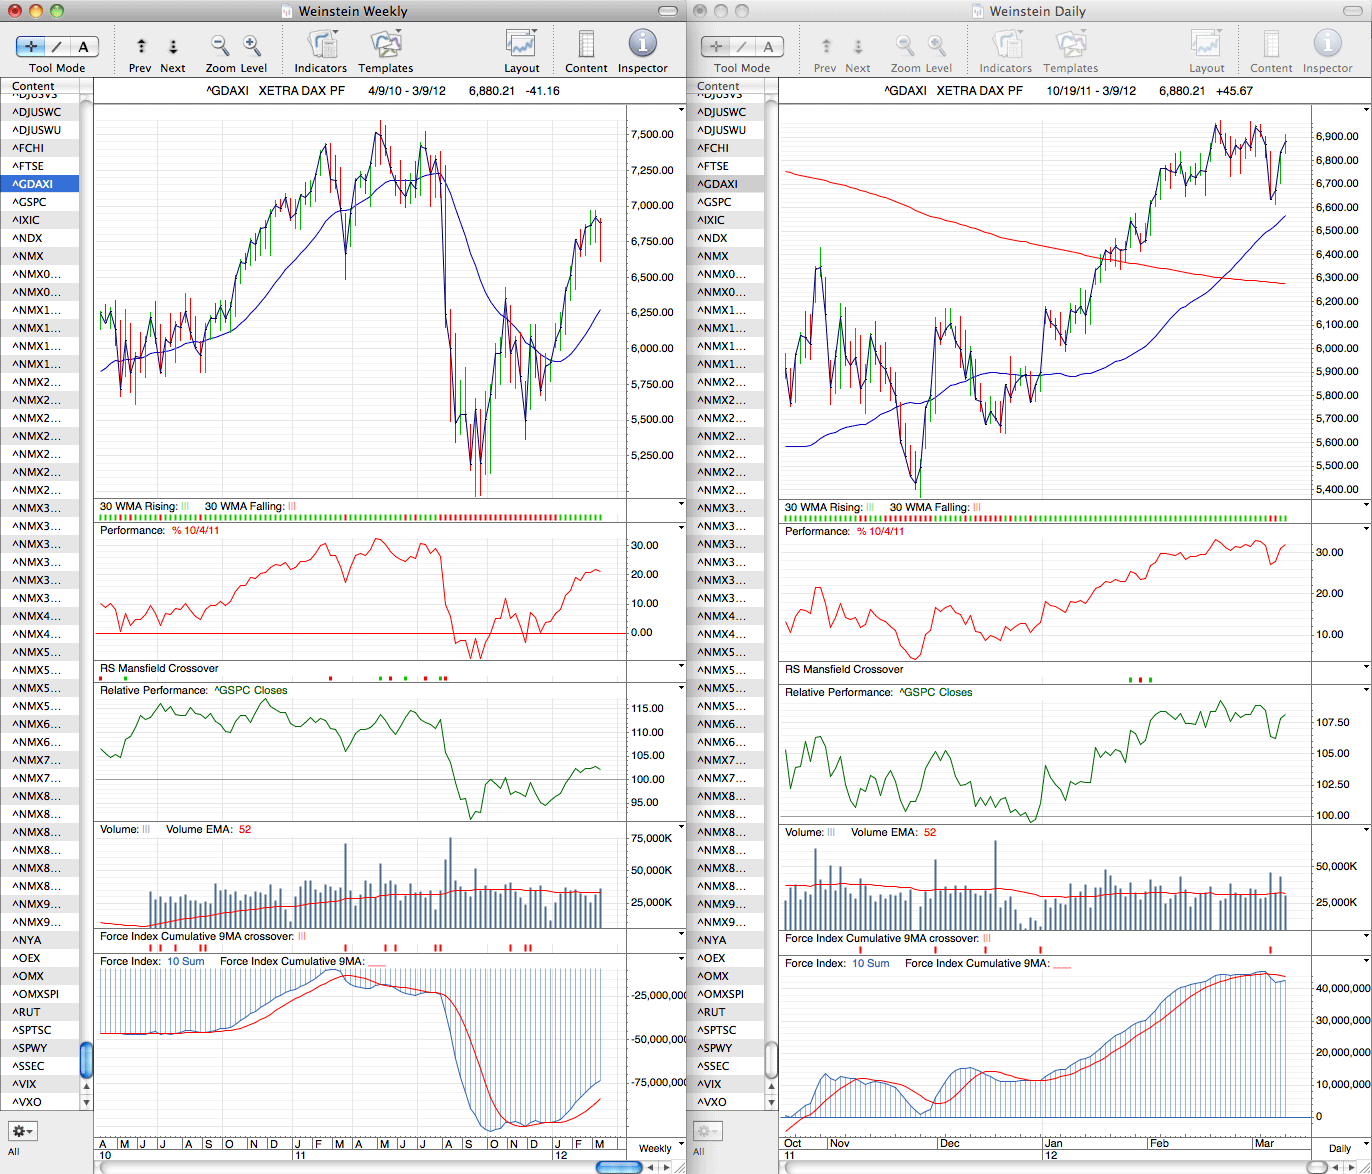 dax_weekly_9_3_12.png